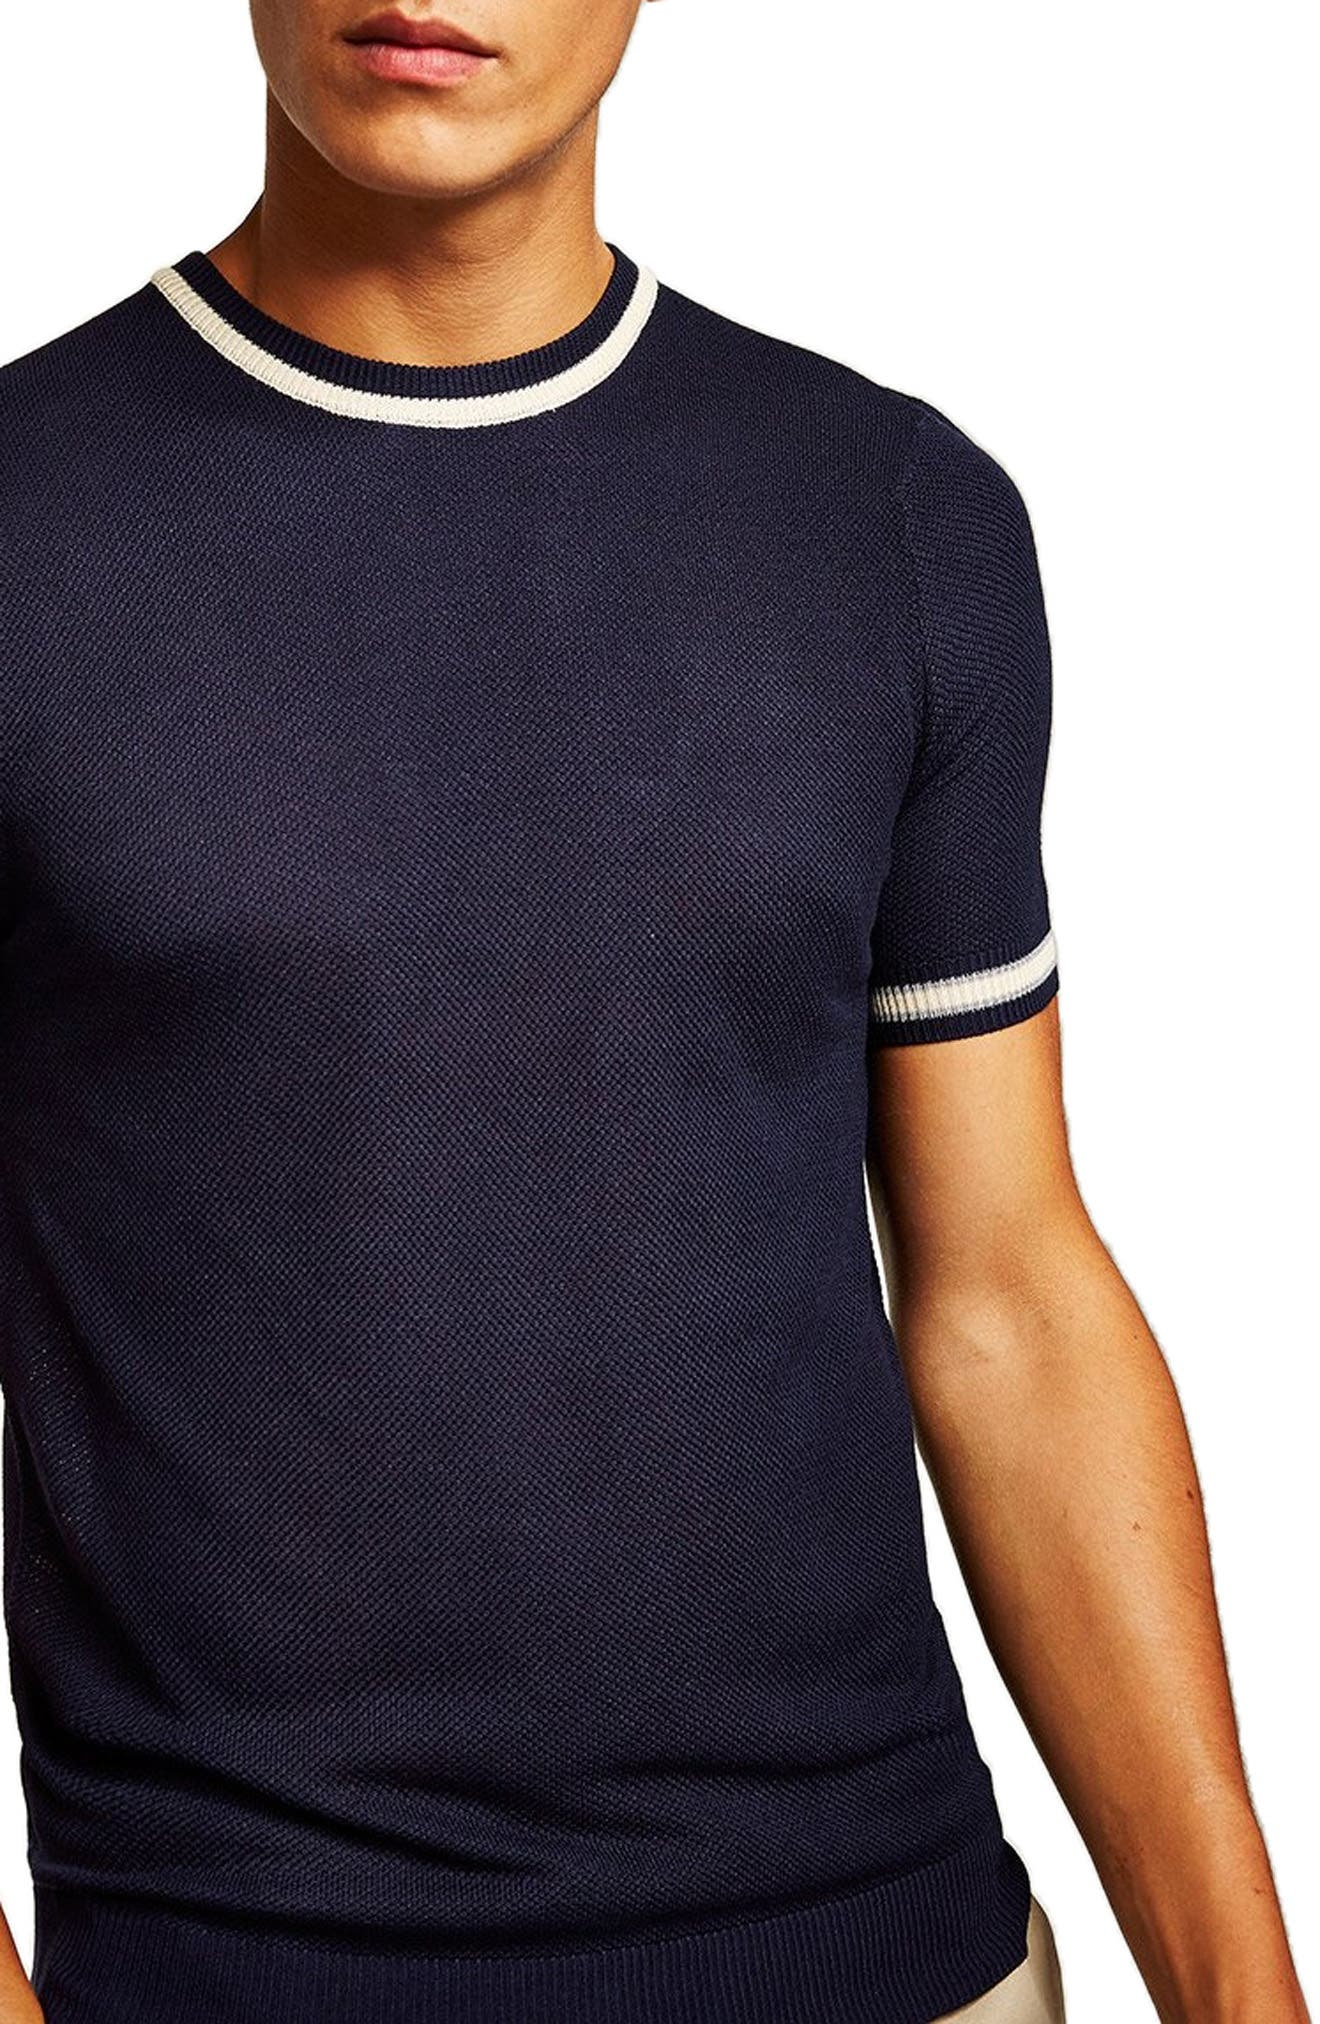 Tipping Classic Fit Short Sleeve Sweater,                             Main thumbnail 1, color,                             NAVY BLUE